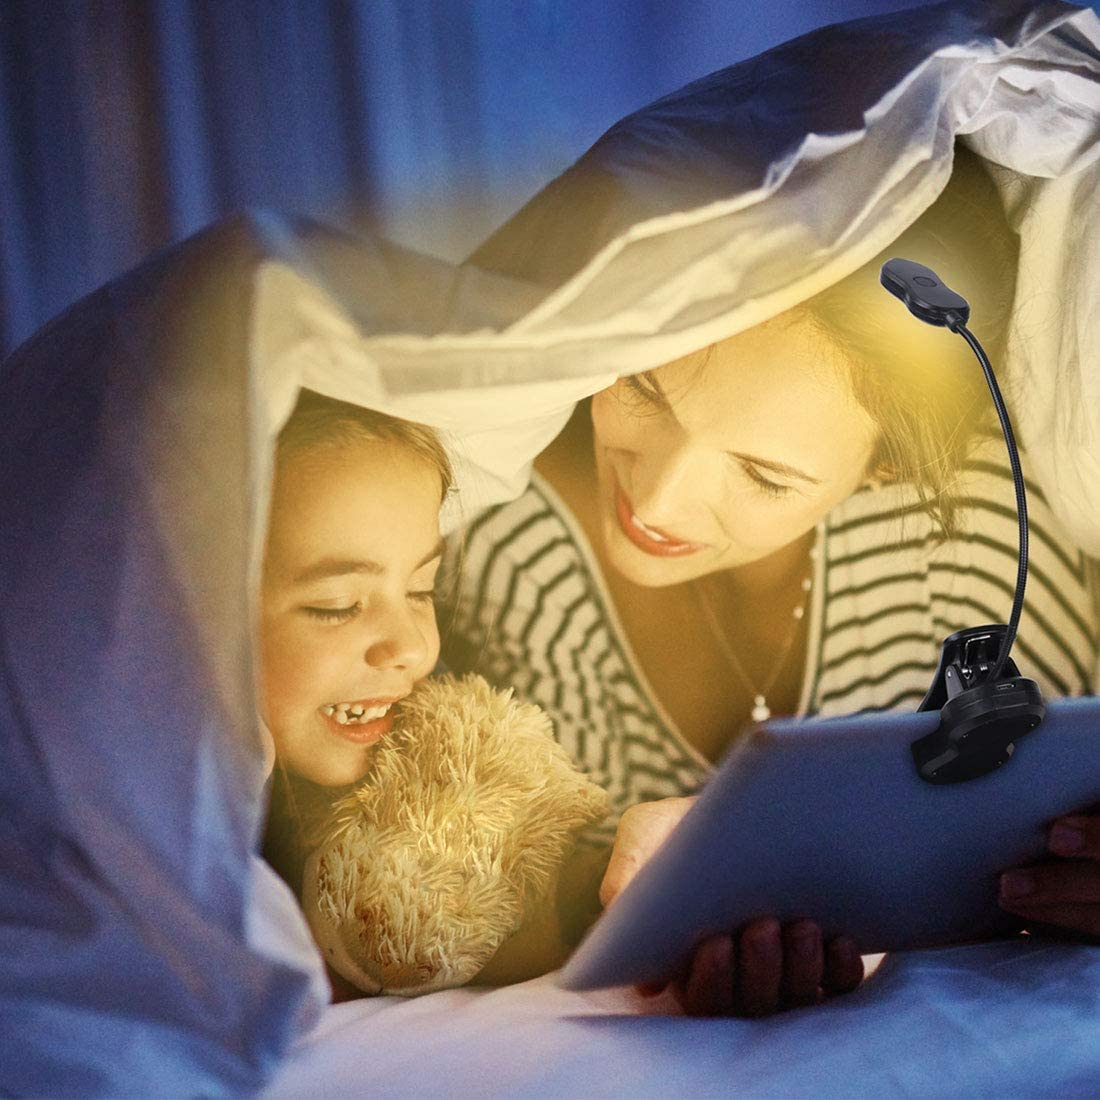 Rechargeable LED Book Light, 2 Warm & 3 White SMD LED, Color and Brightness Adjustable, Clip on Reading Lights for Reading in Bed at Night, 9 Brightness Levels, Lightweight, Ideal for Bookworms, Pian: Home Improvement